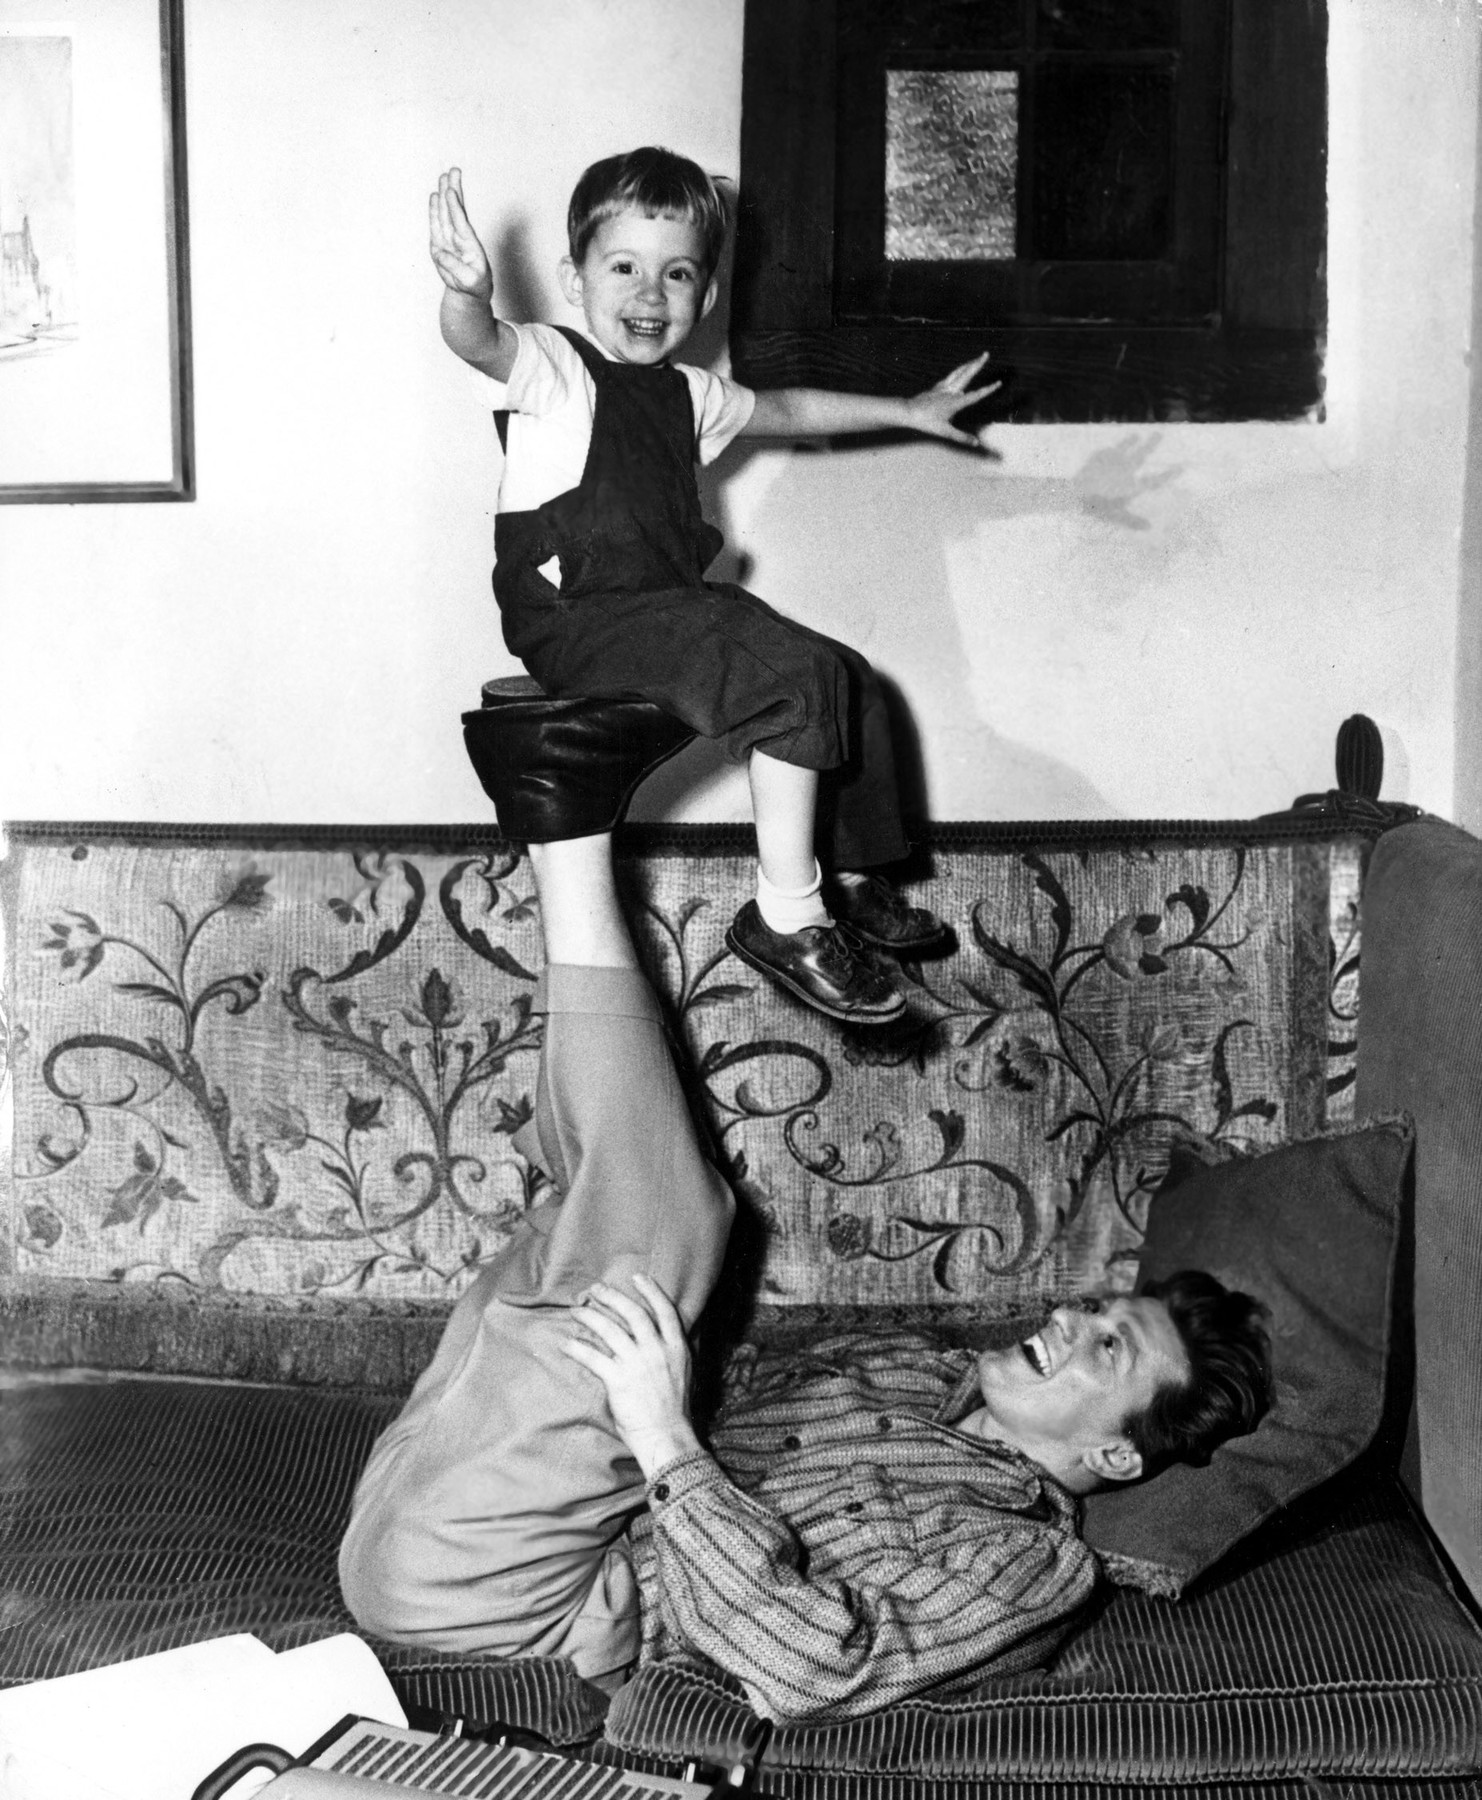 Kirk Douglas playing with son (Eric?), Image: 307590276, License: Rights-managed, Restrictions: Courtesy Everett Collection, Model Release: no, Credit line: Courtesy Everett Collection / Everett / Profimedia